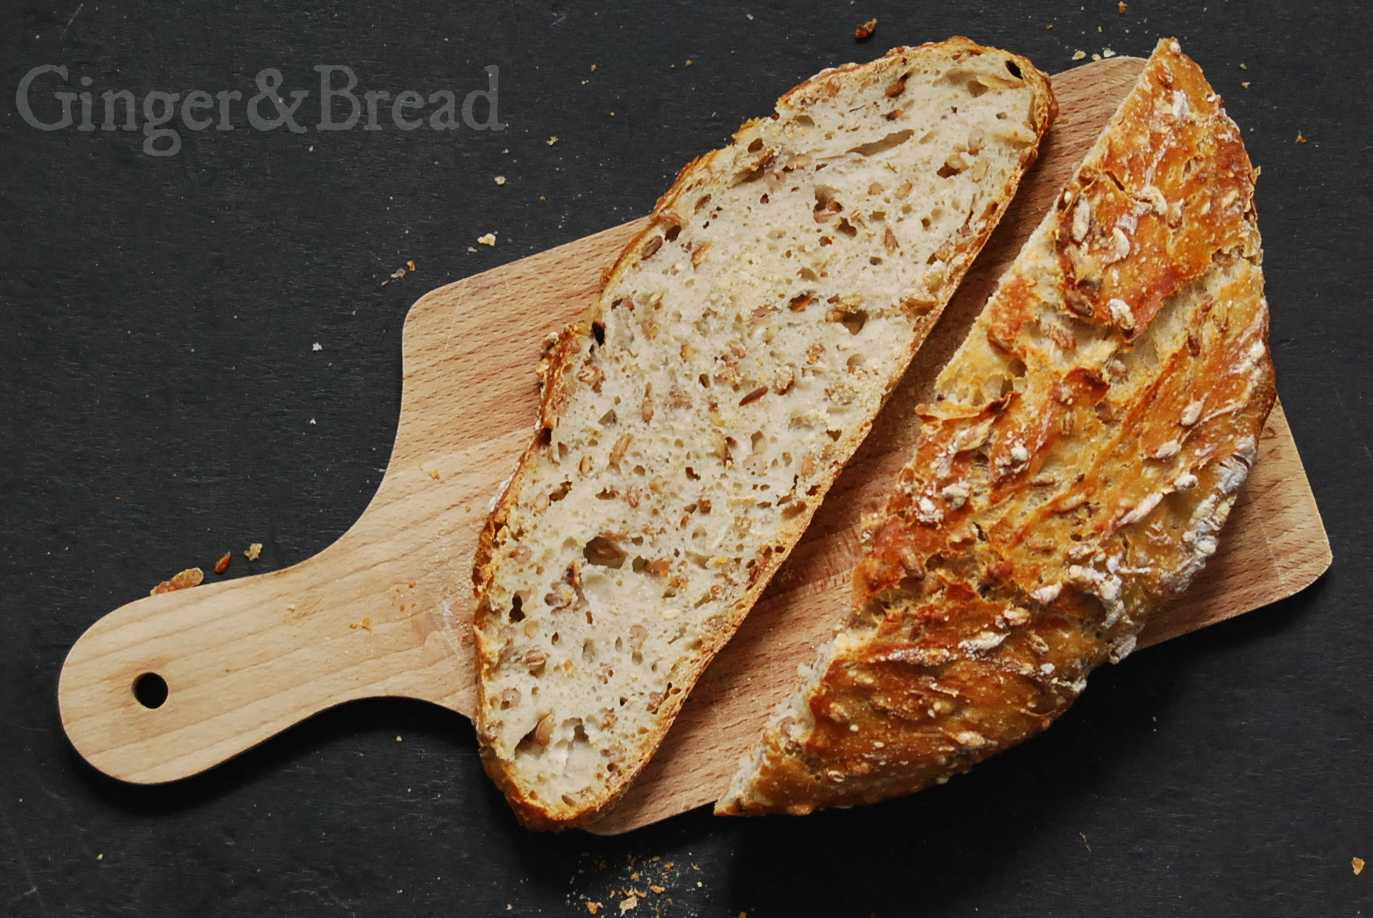 Wheat, Rye and Spelt crust and texture